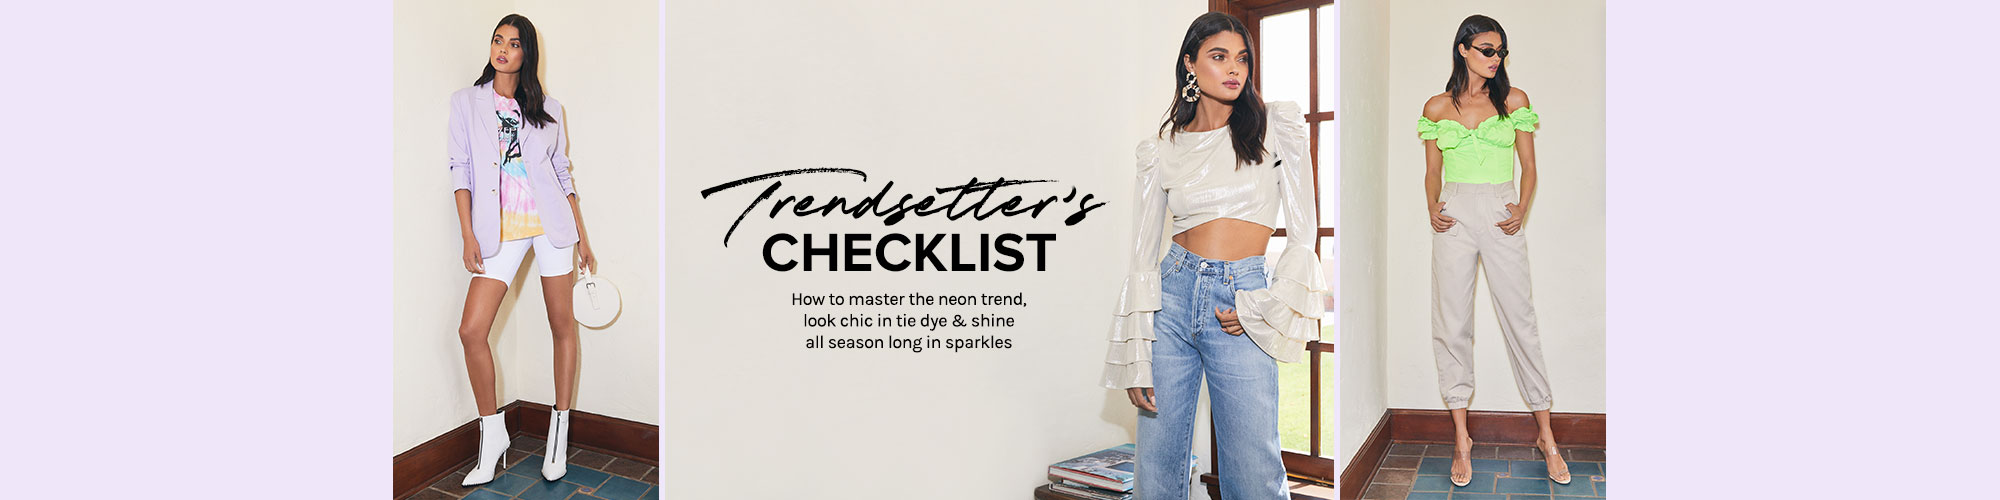 Trendsetter\'s Checklist. How to master the neon trend, look chic in tie dye & shine all season long in sparkles. Shop the edit.